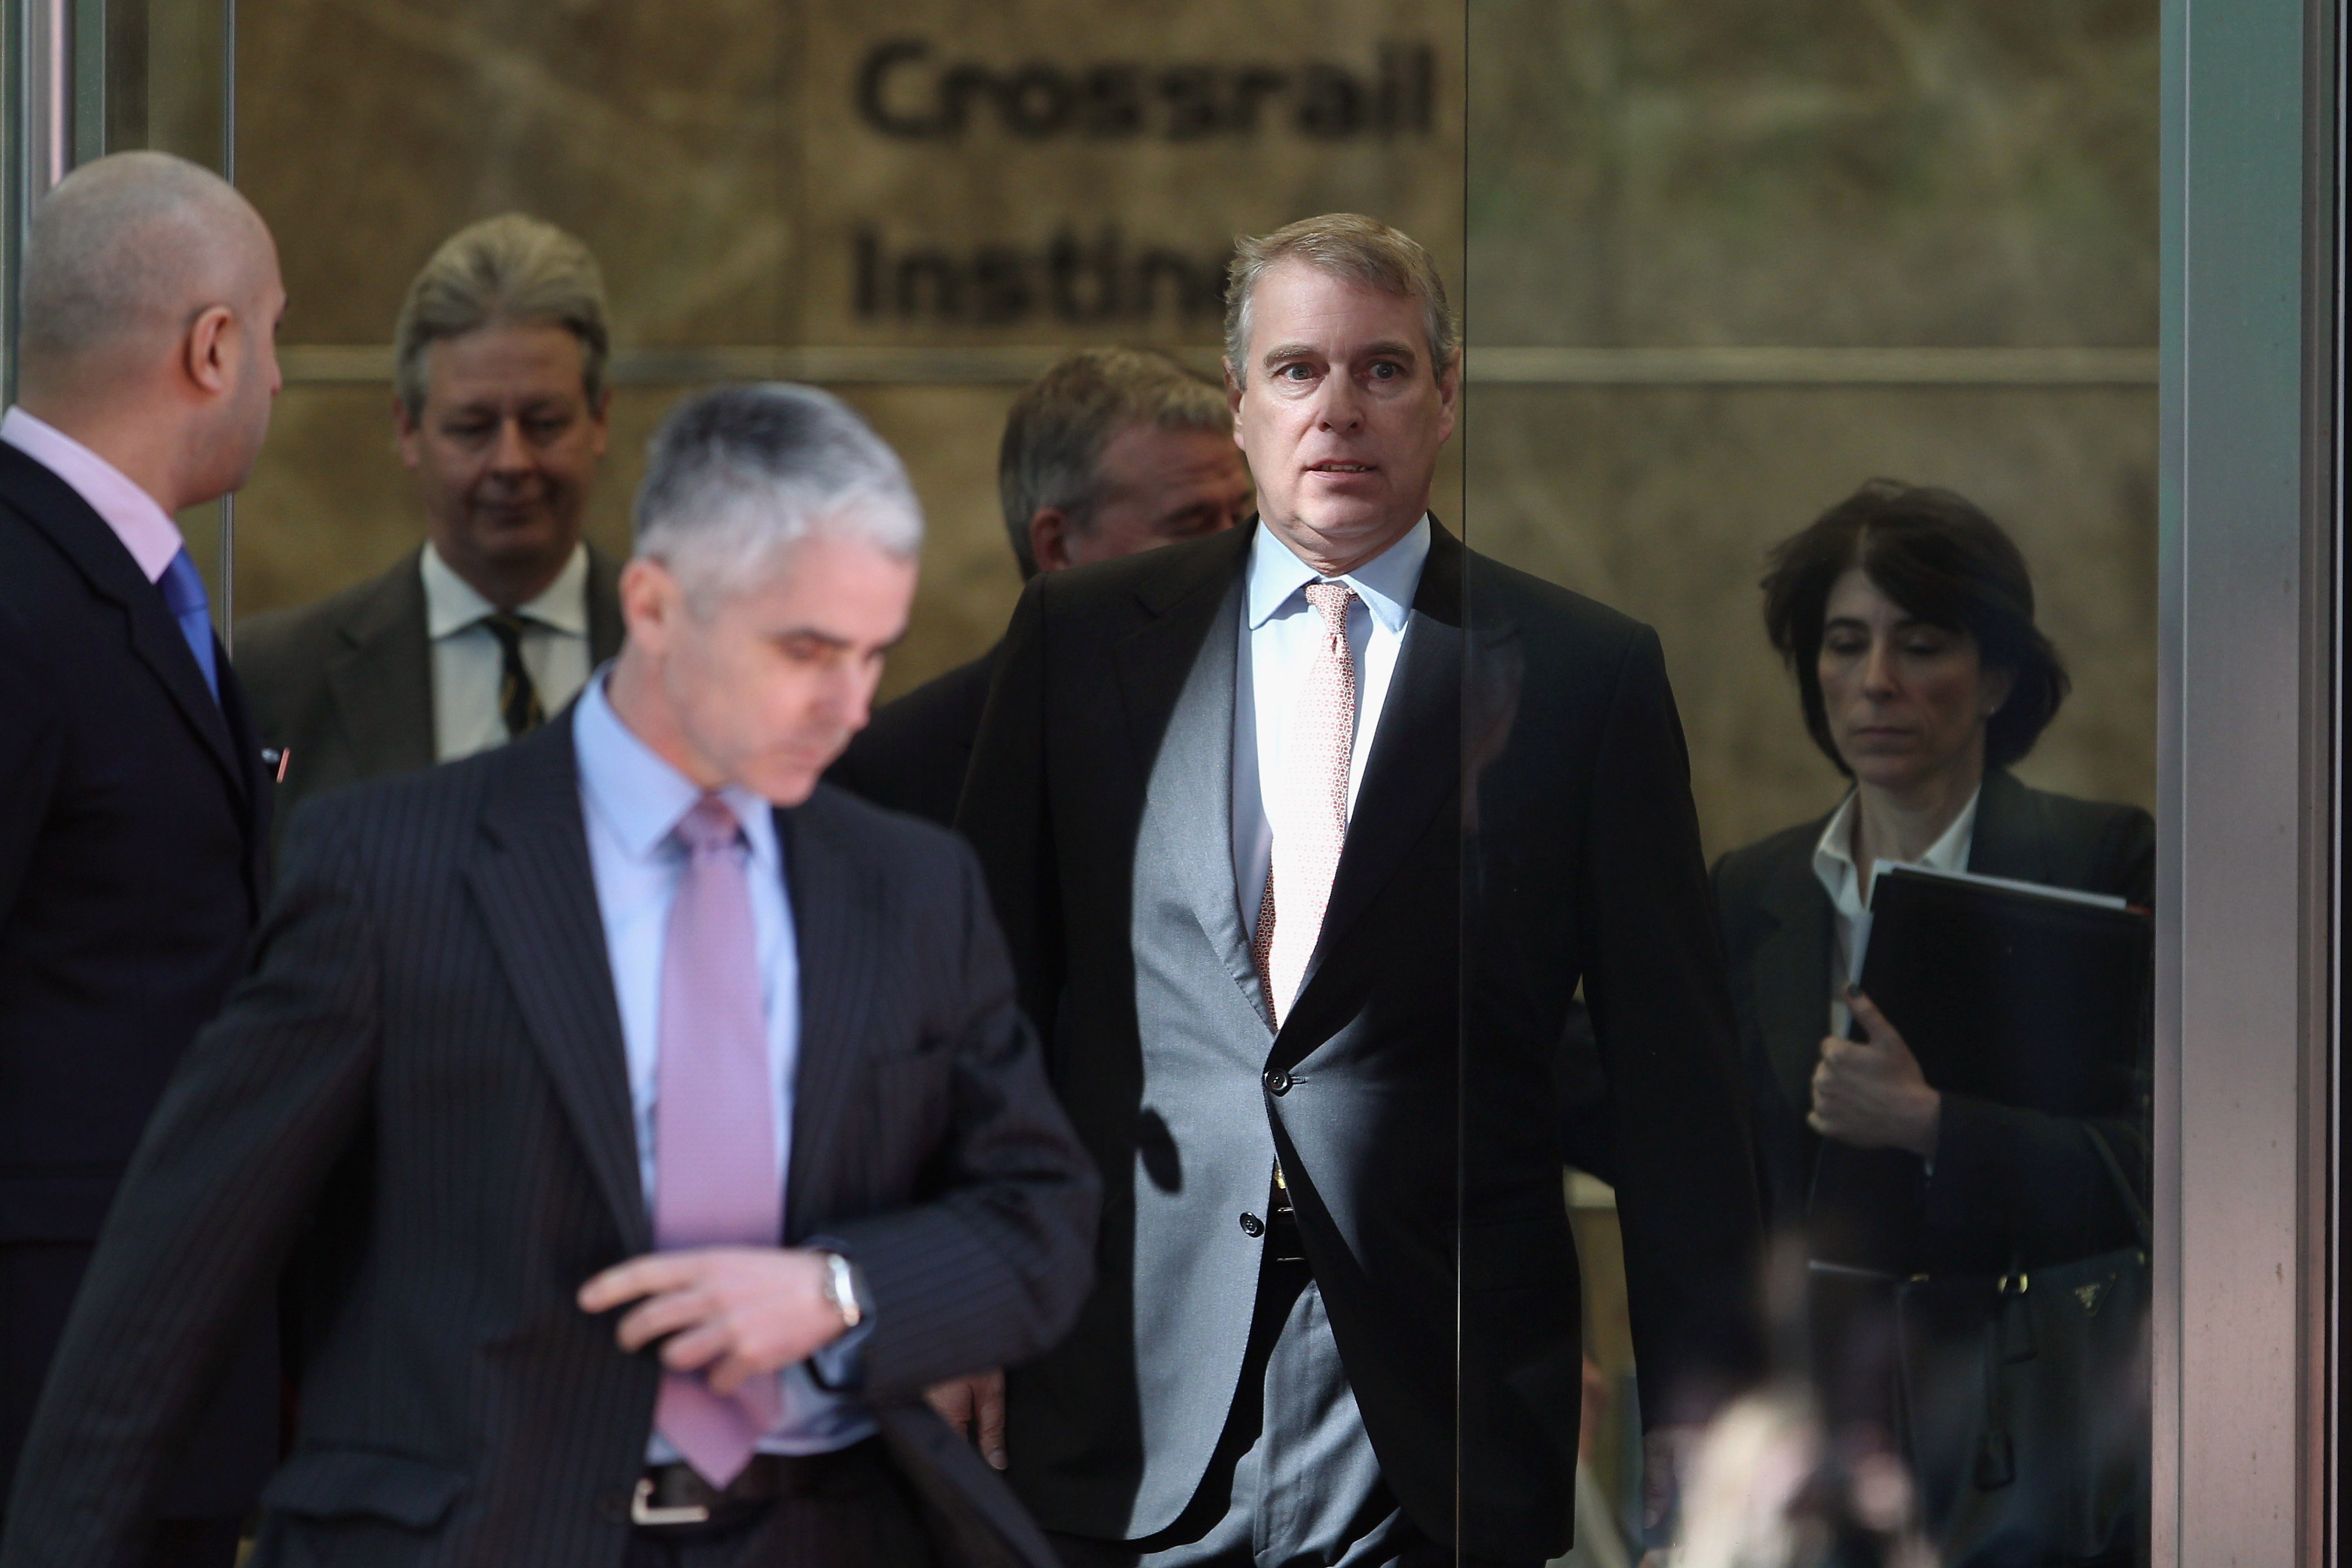 Prince Andrew, Duke of York (2nd R) leaves the headquarters of Crossrail at Canary Wharf on March 7, 2011 in London, England. Prince Andrew is under increasing pressure after a series of damaging revelations about him surfaced, including criticism over his friendship with convicted sex offender Jeffrey Epstein, an American financier. (Photo by Dan Kitwood/Getty Images)